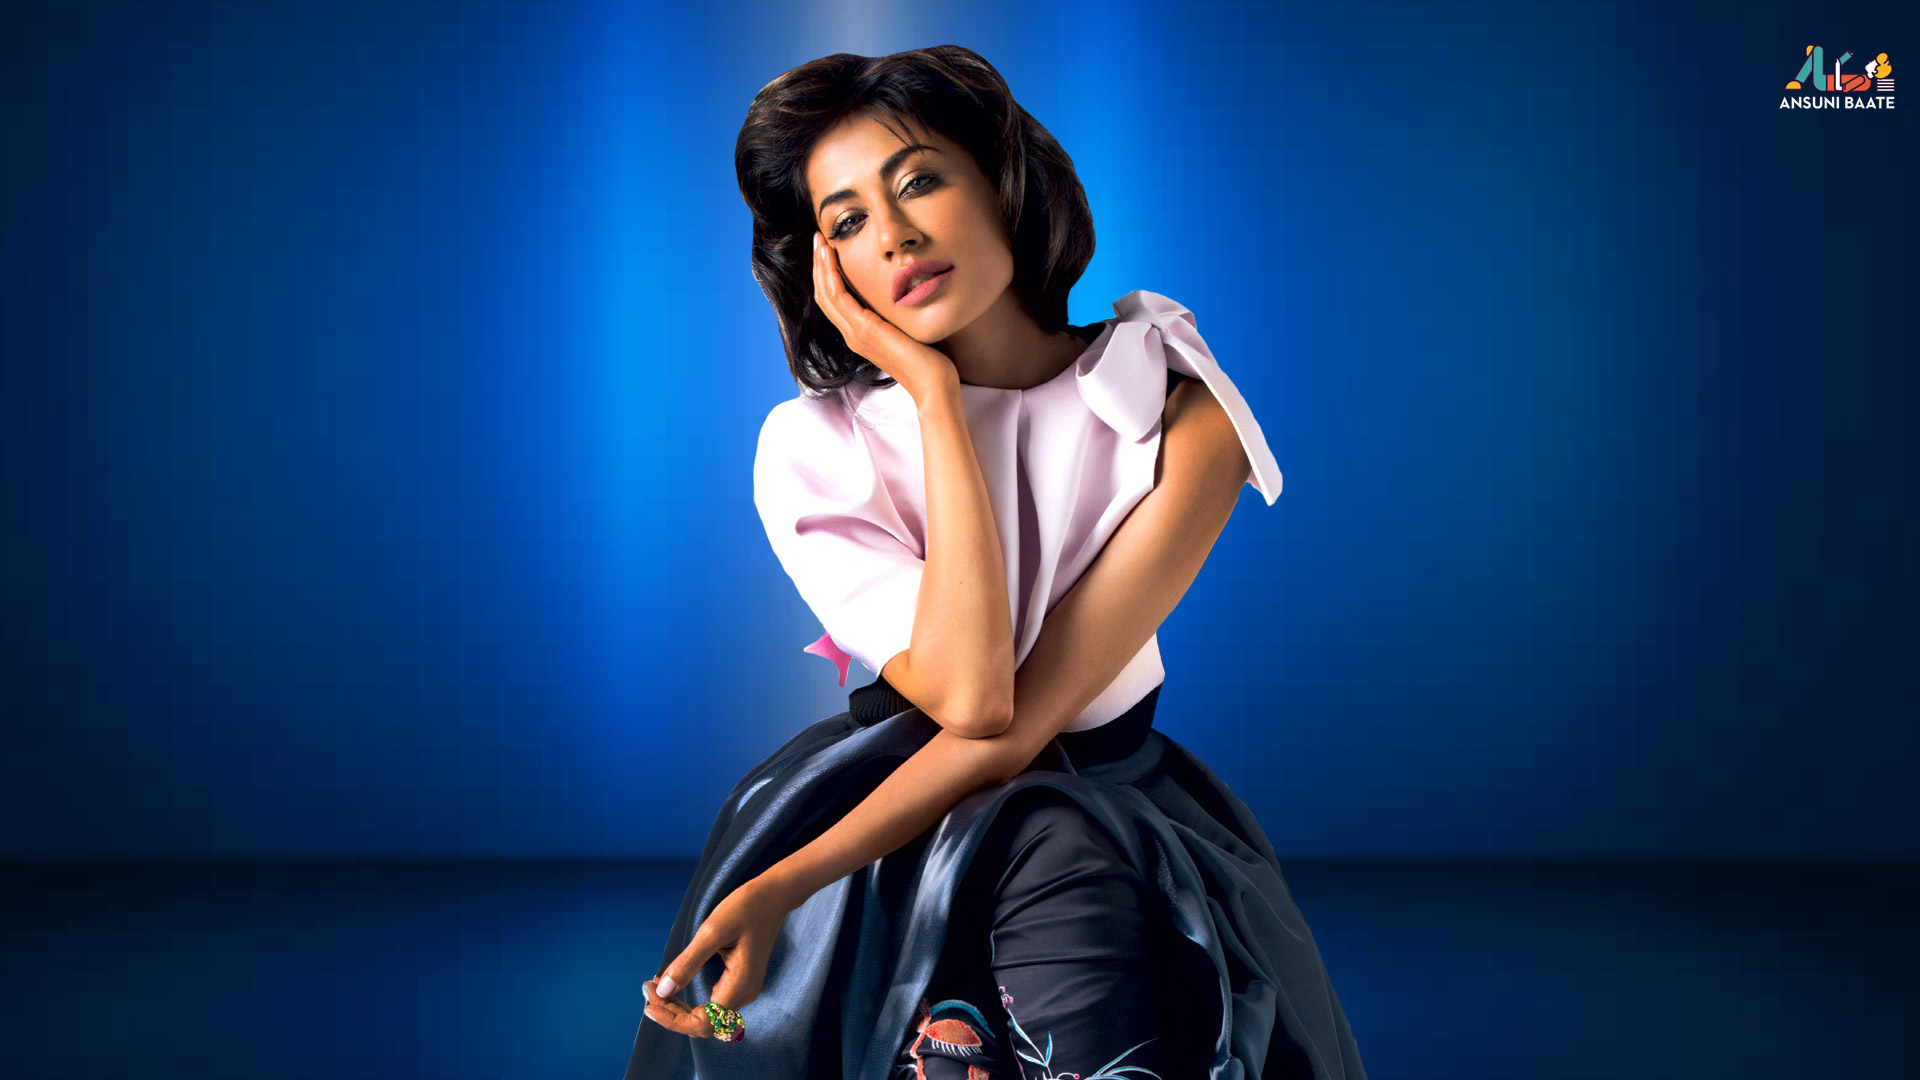 Chitrangada Singh Images, Wallpaper Pictures and Photos Gallery